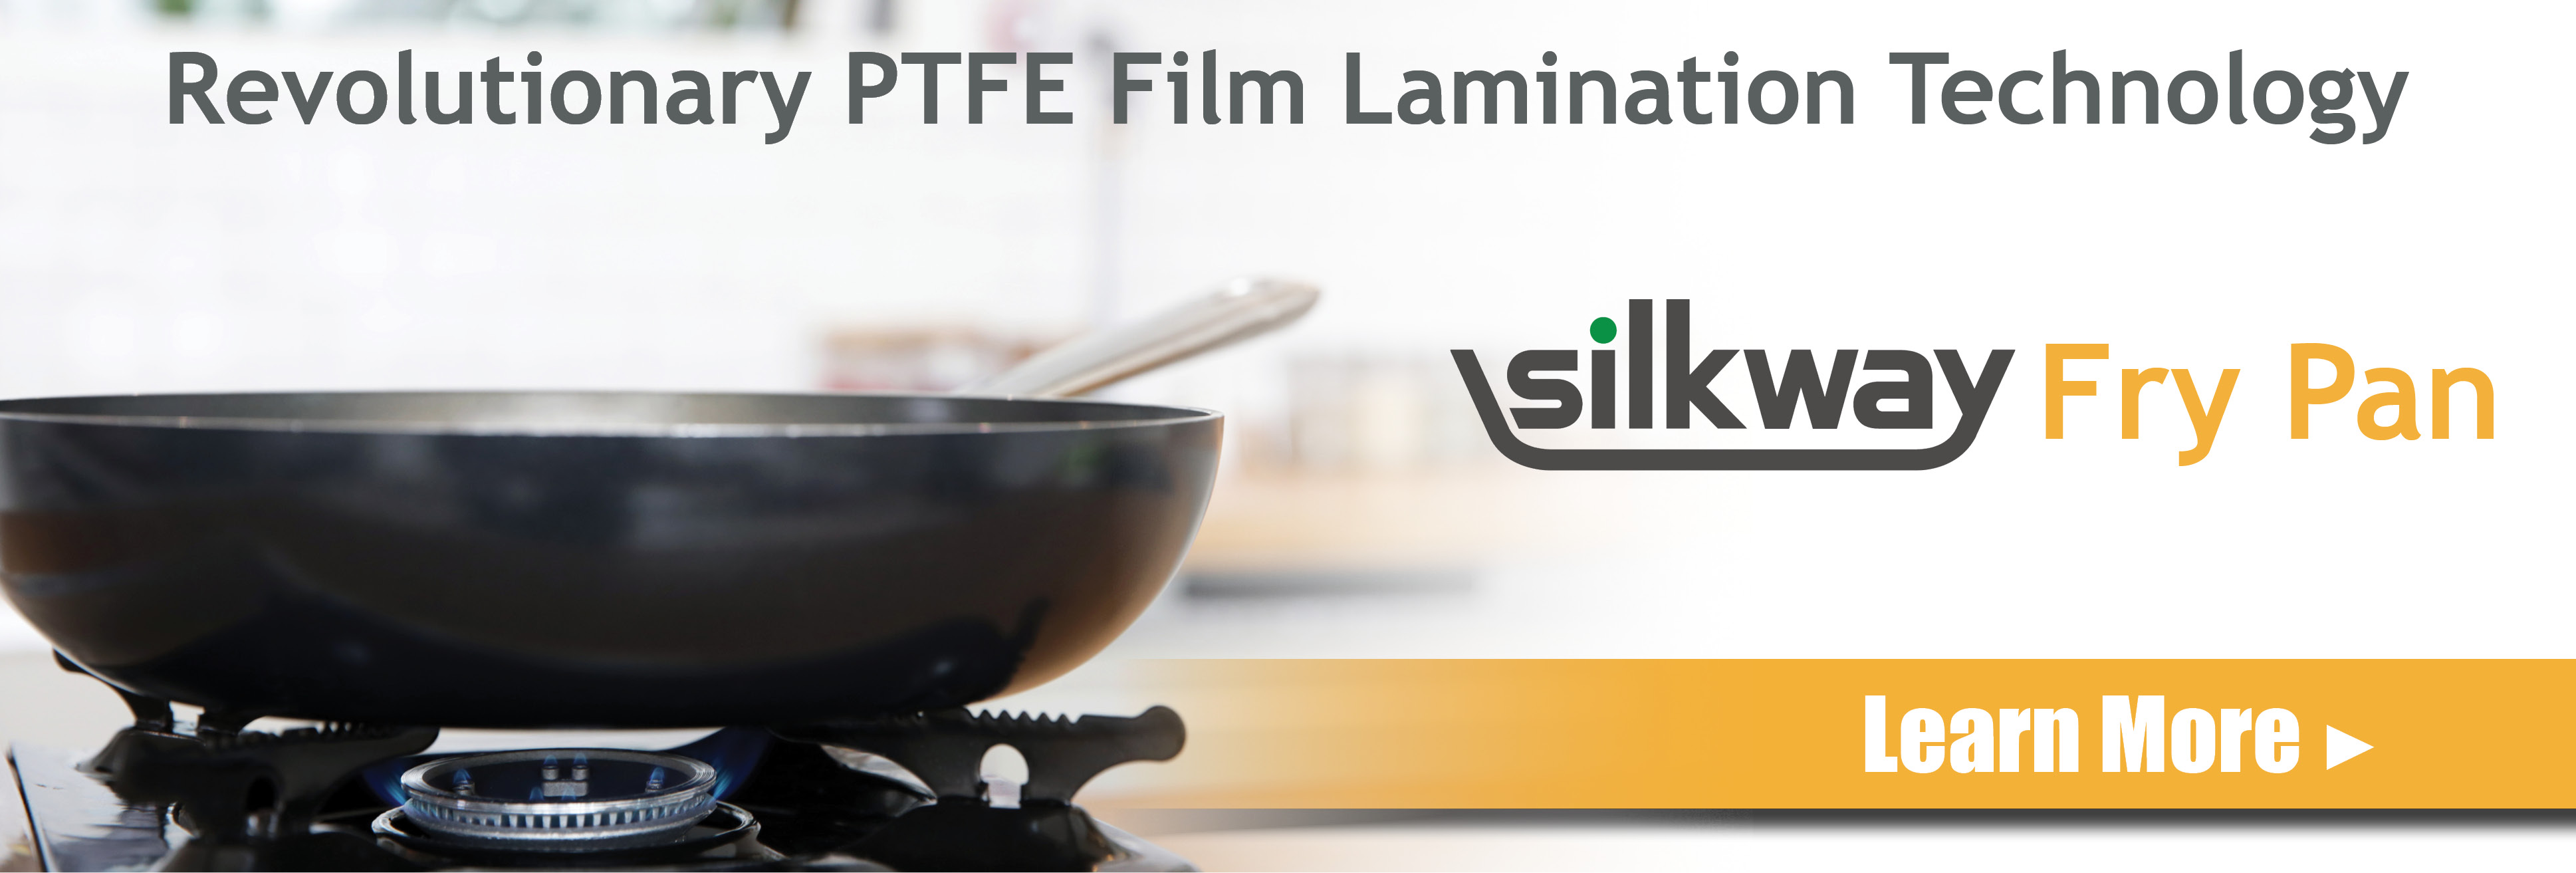 Silkway Fry Pan Offered Exclusively By Chefs Planet Revolutionary Nonstick Film Lamination Technology